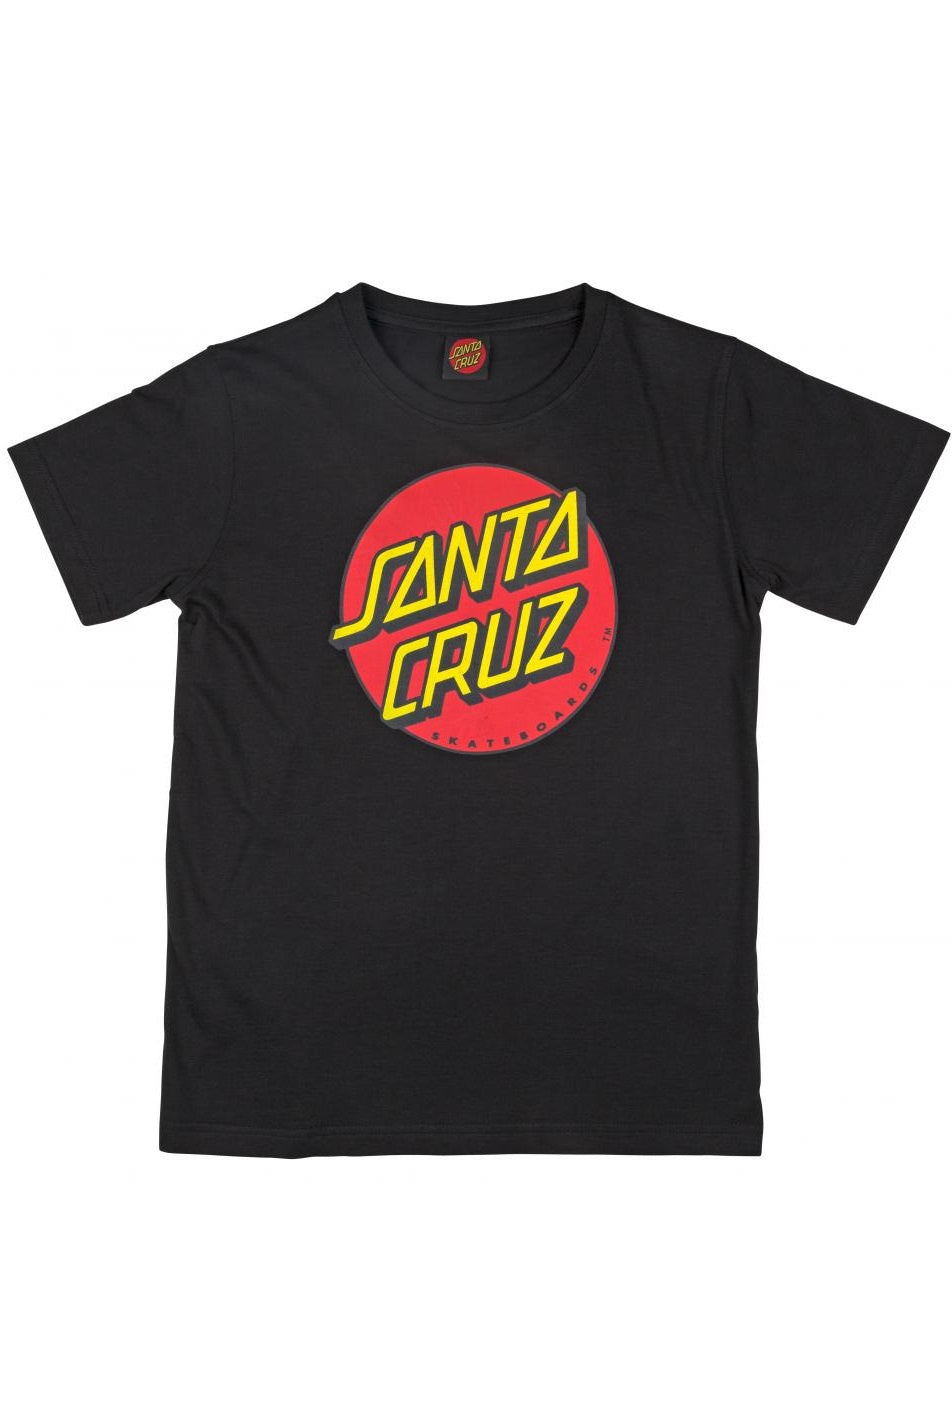 SANTA CRUZ T-Shirt Classic Dot Black - Circle Collective